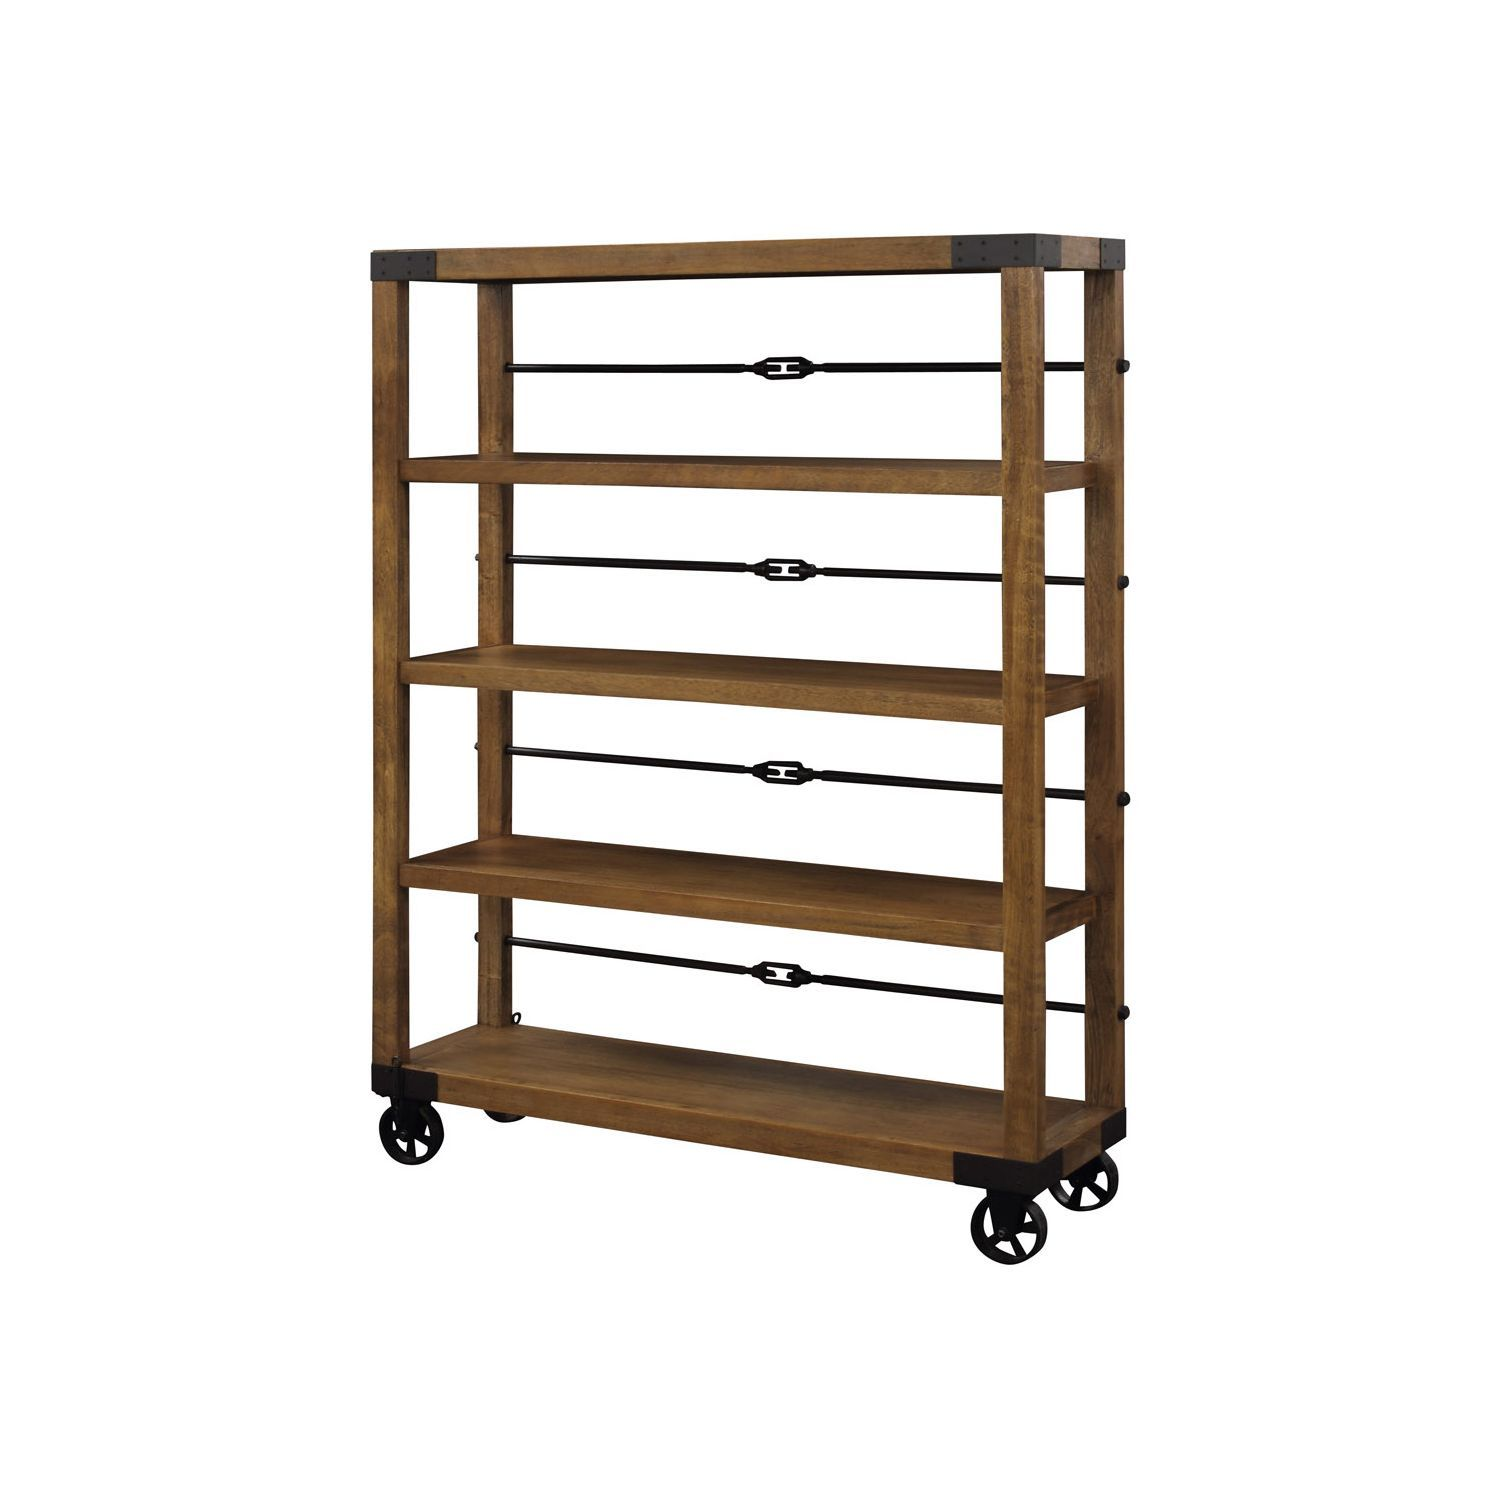 creighton accent shelving creighton accent shelving retail location shelves 3025